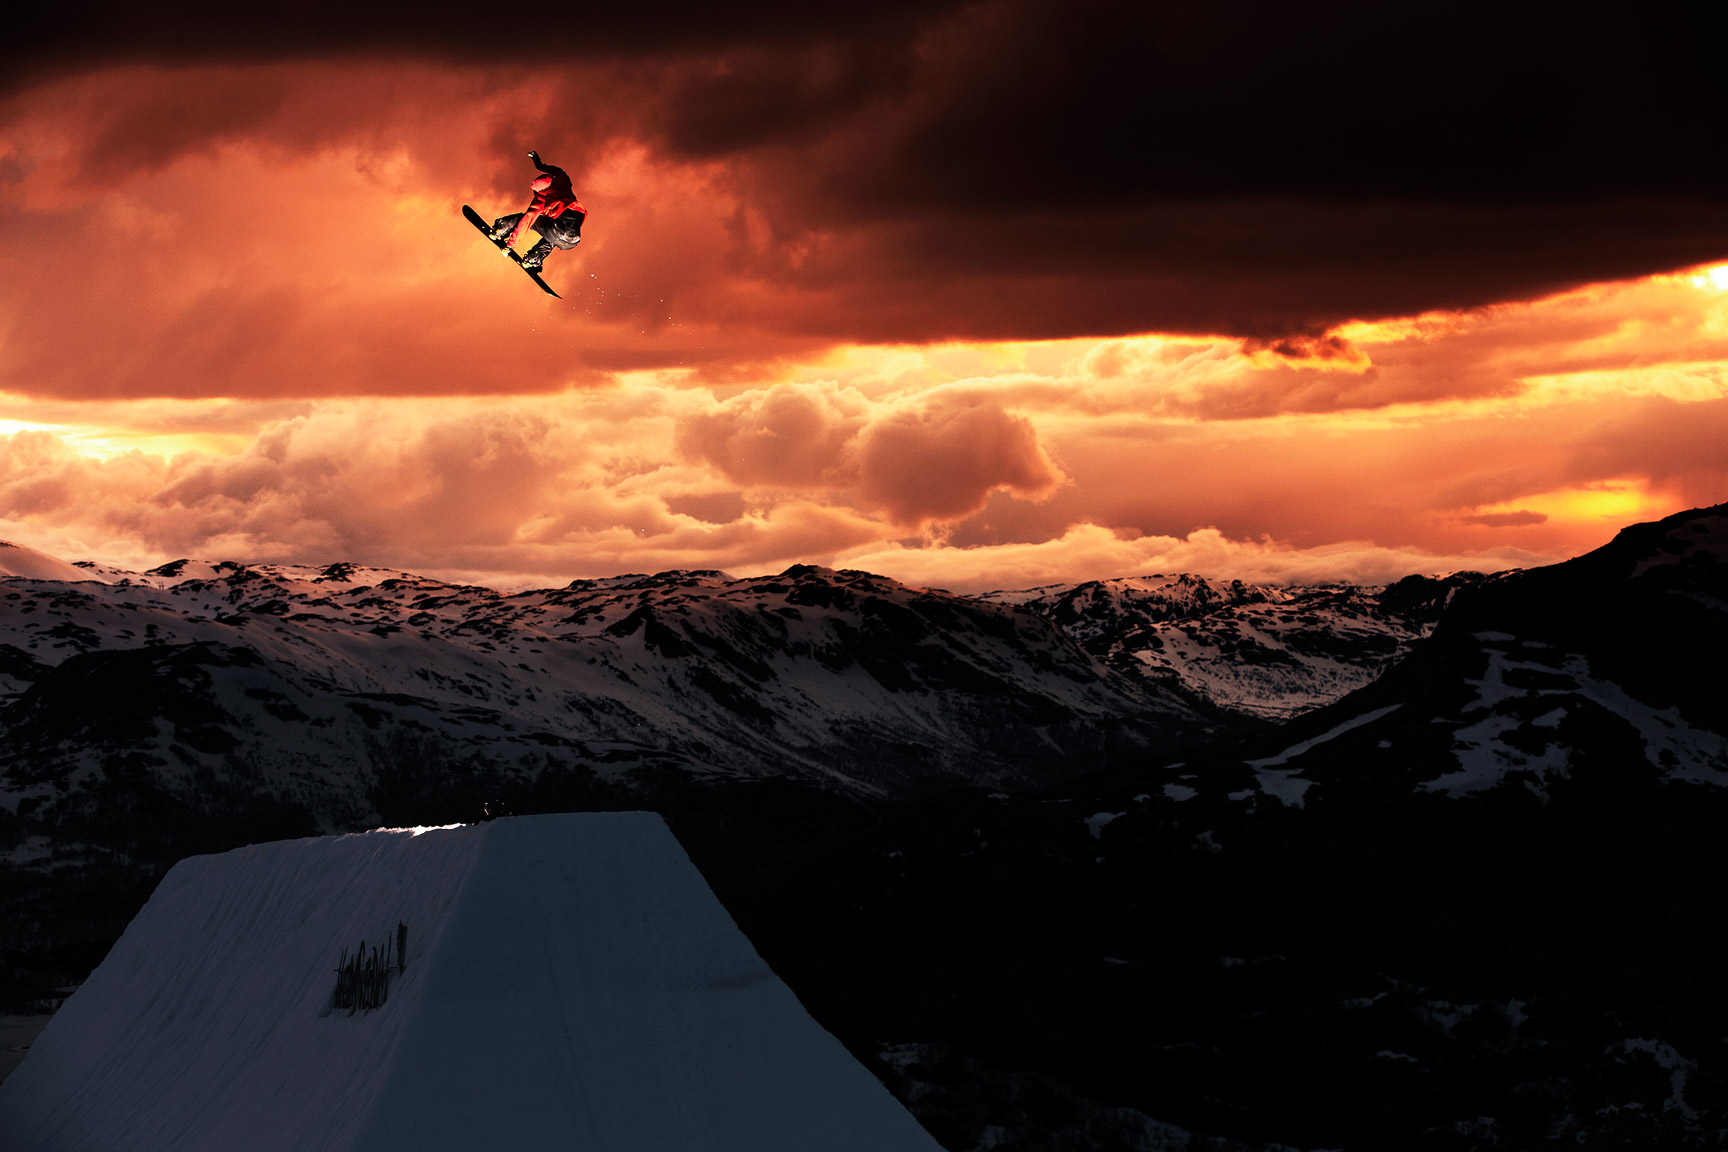 Men's Snowboard Big Air